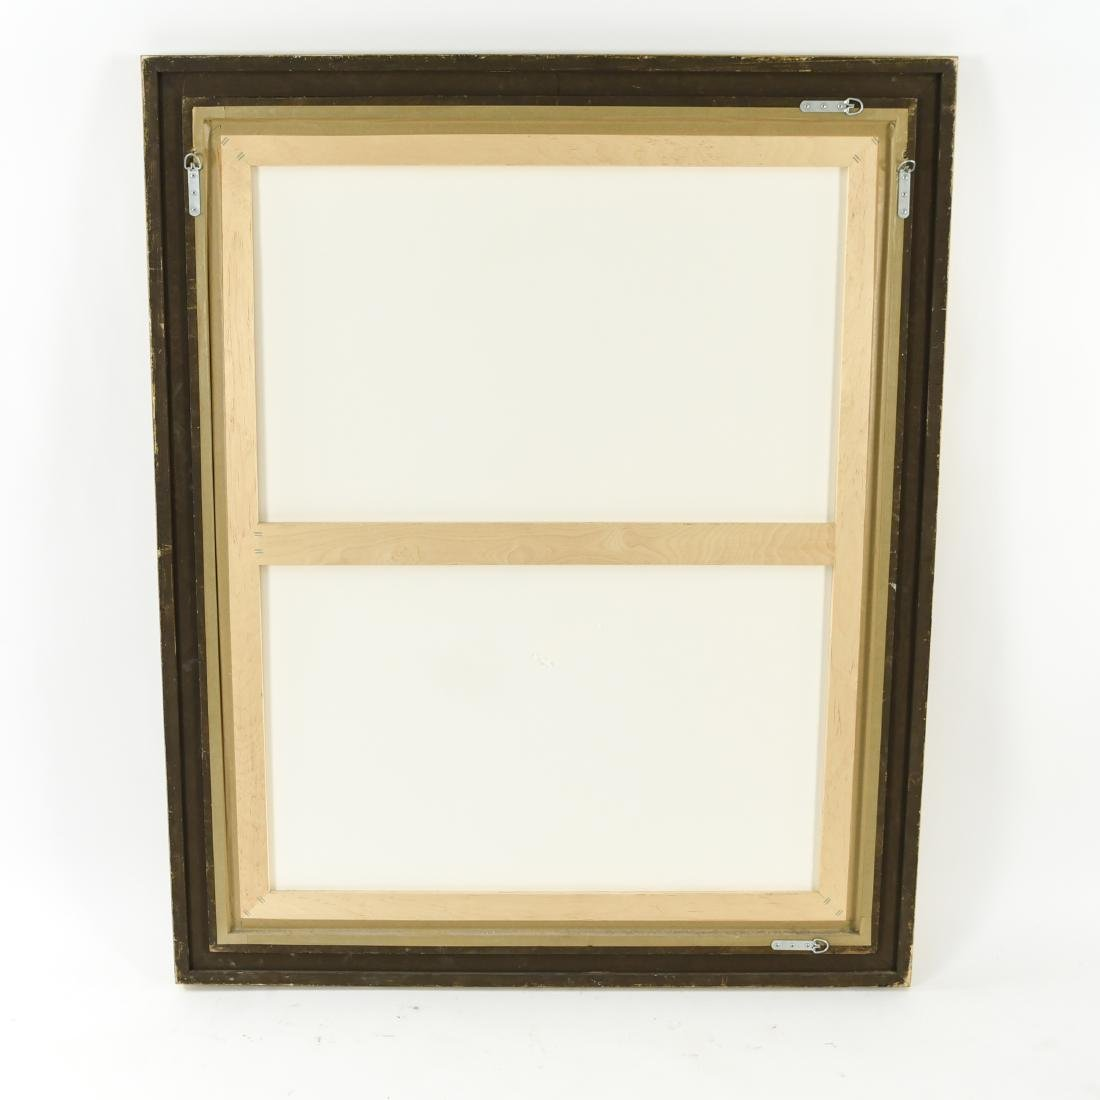 DECORATIVE GOLD FRAME MIRROR - 8